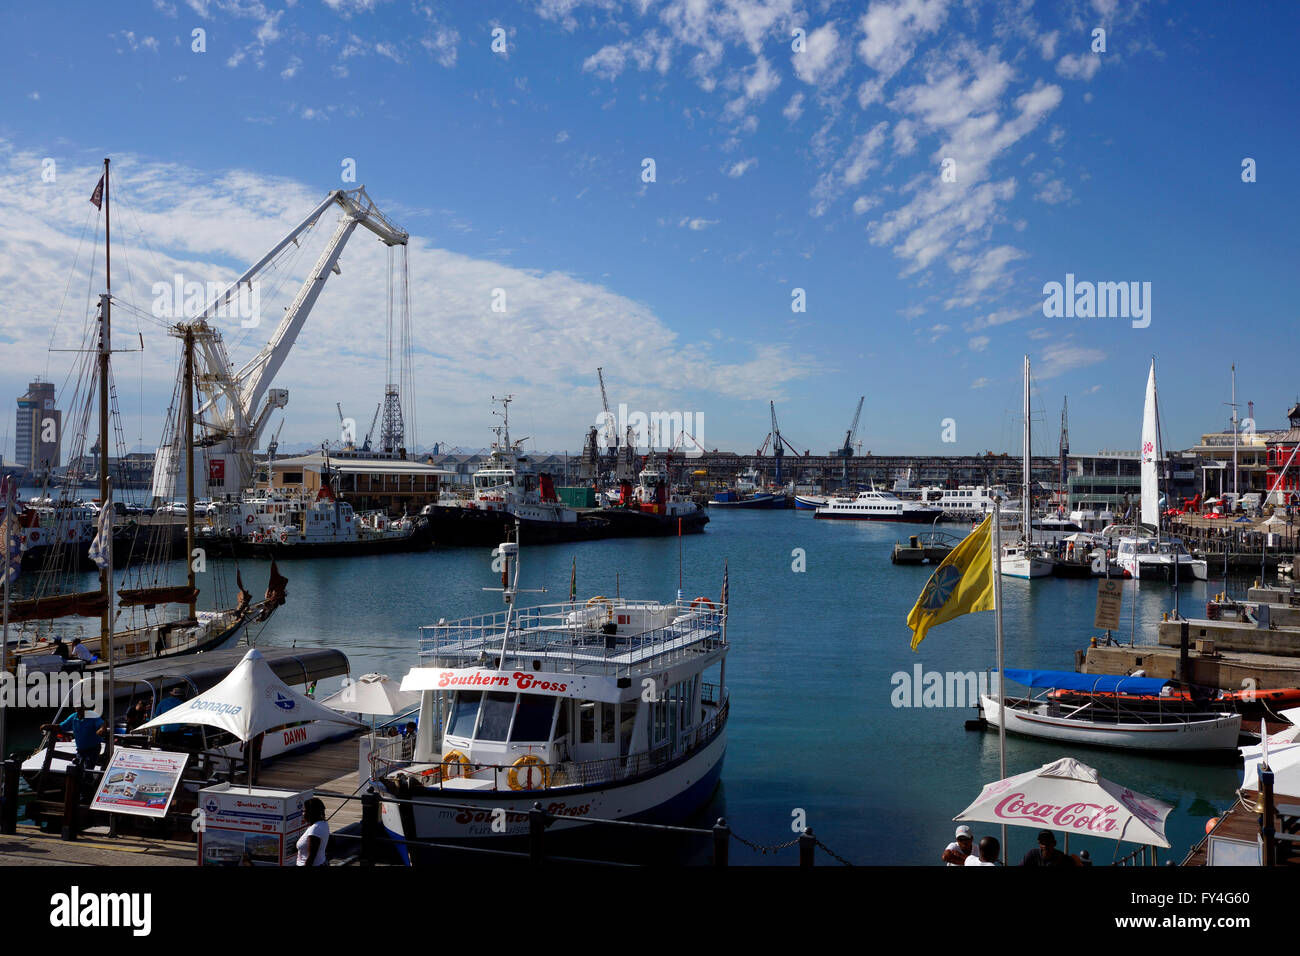 Cruise ships at the V & A Waterfront in Cape Town, South Africa. - Stock Image